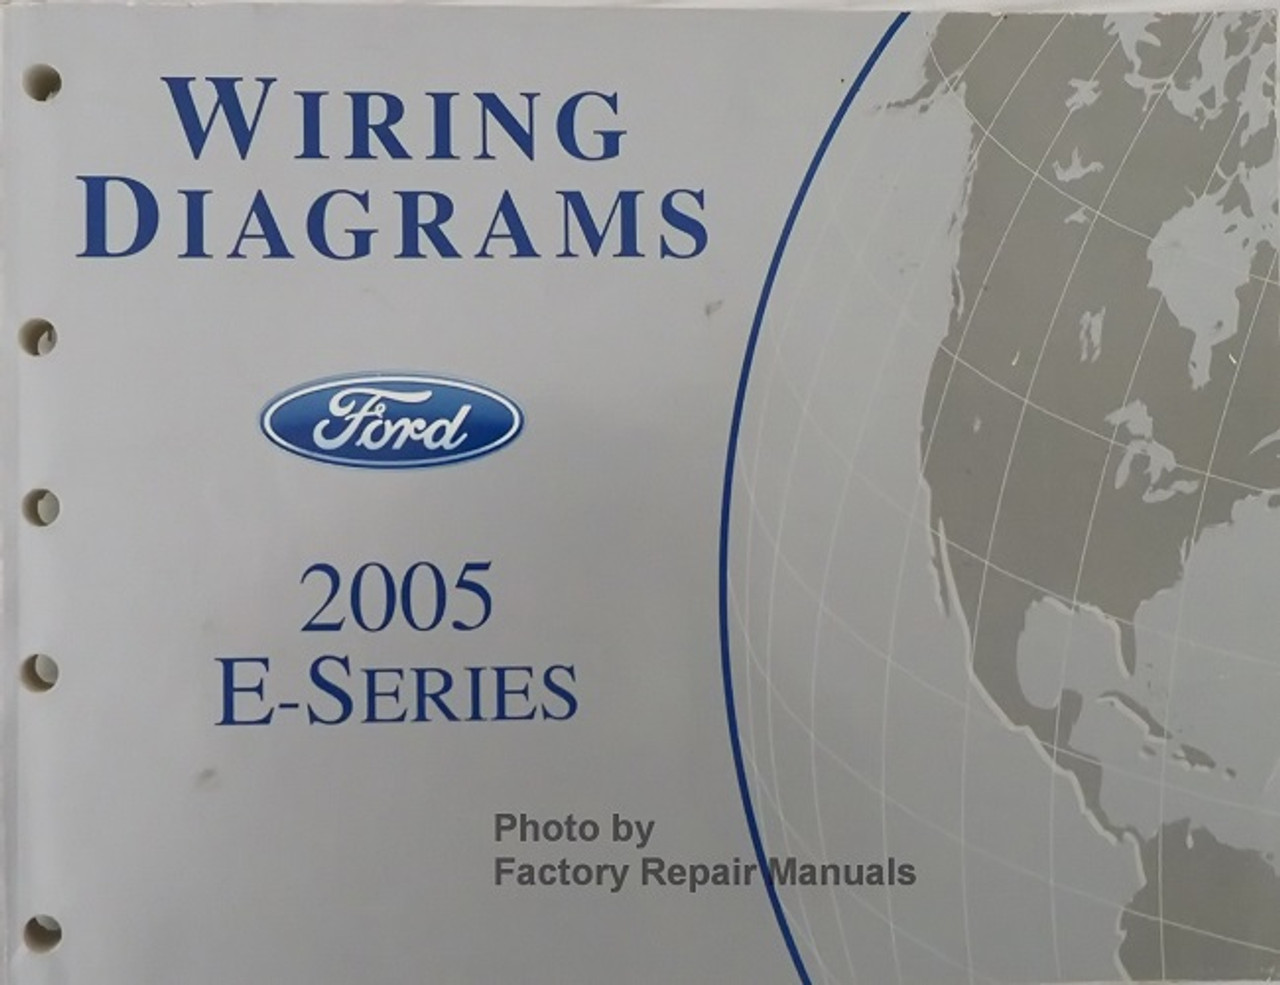 Ford 1600 Wiring Diagram - Wiring Diagram